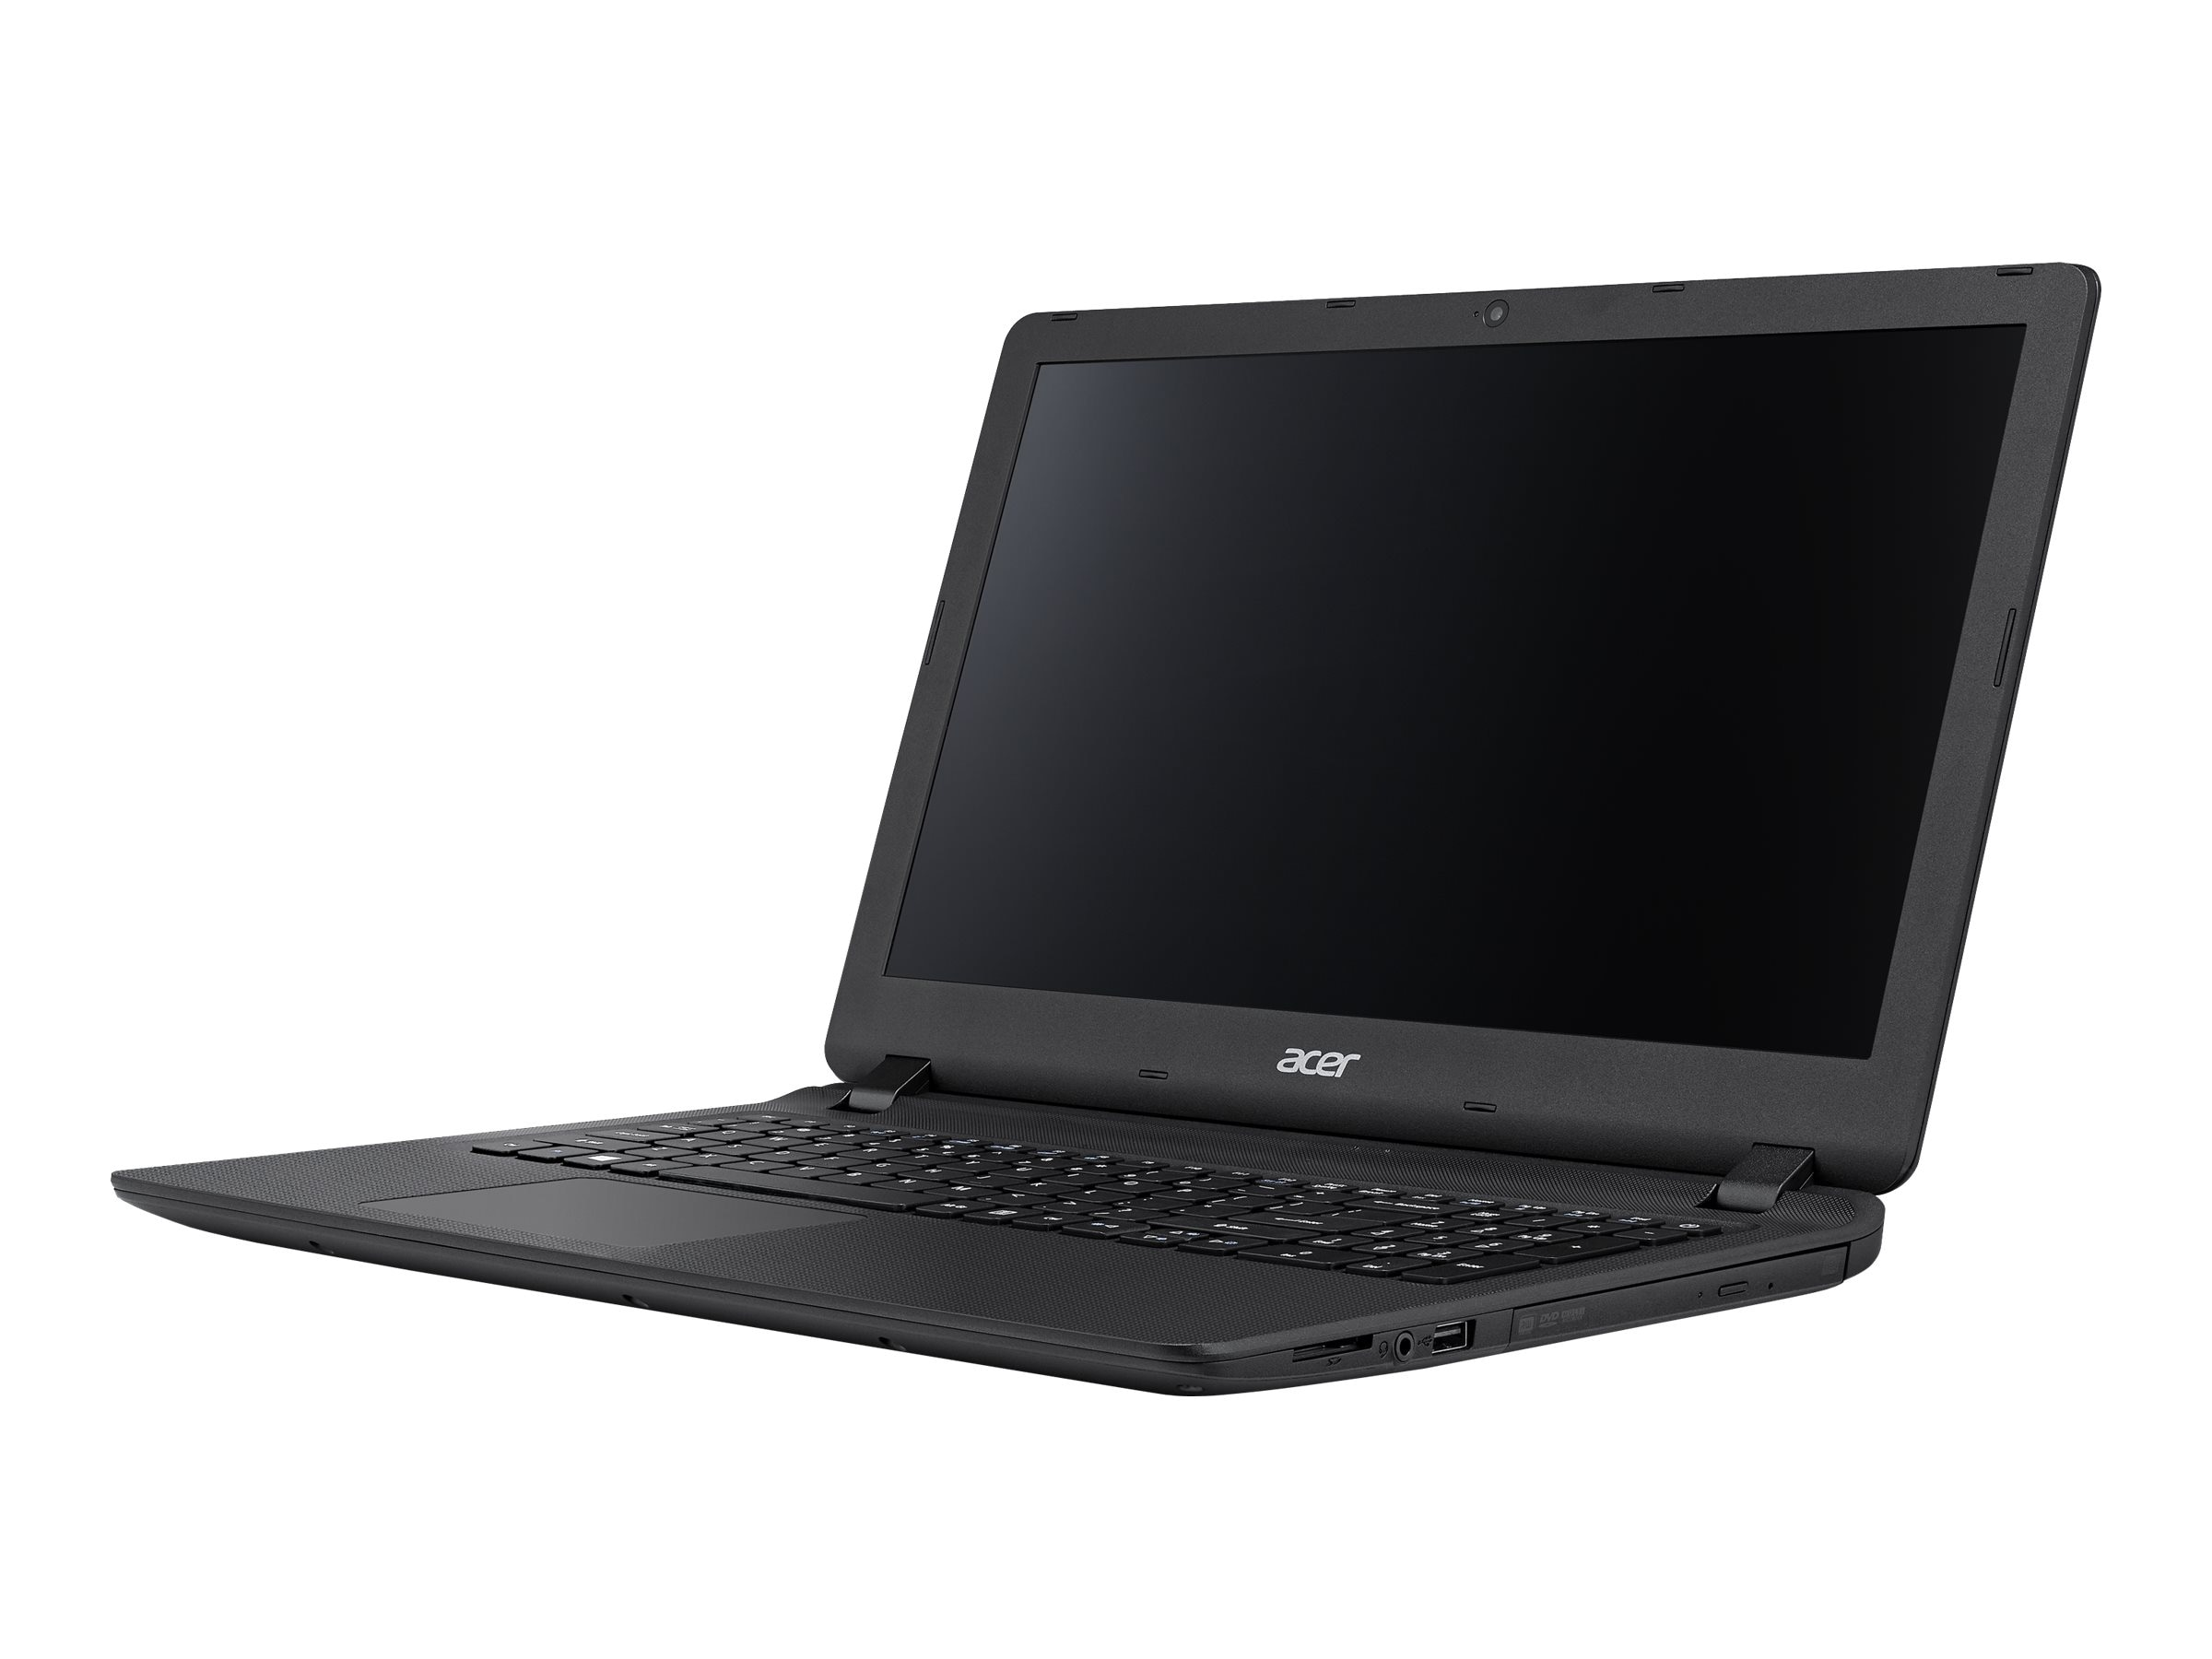 Acer Aspire ES1-533-C2PE 1.1GHz Celeron 17.3in display